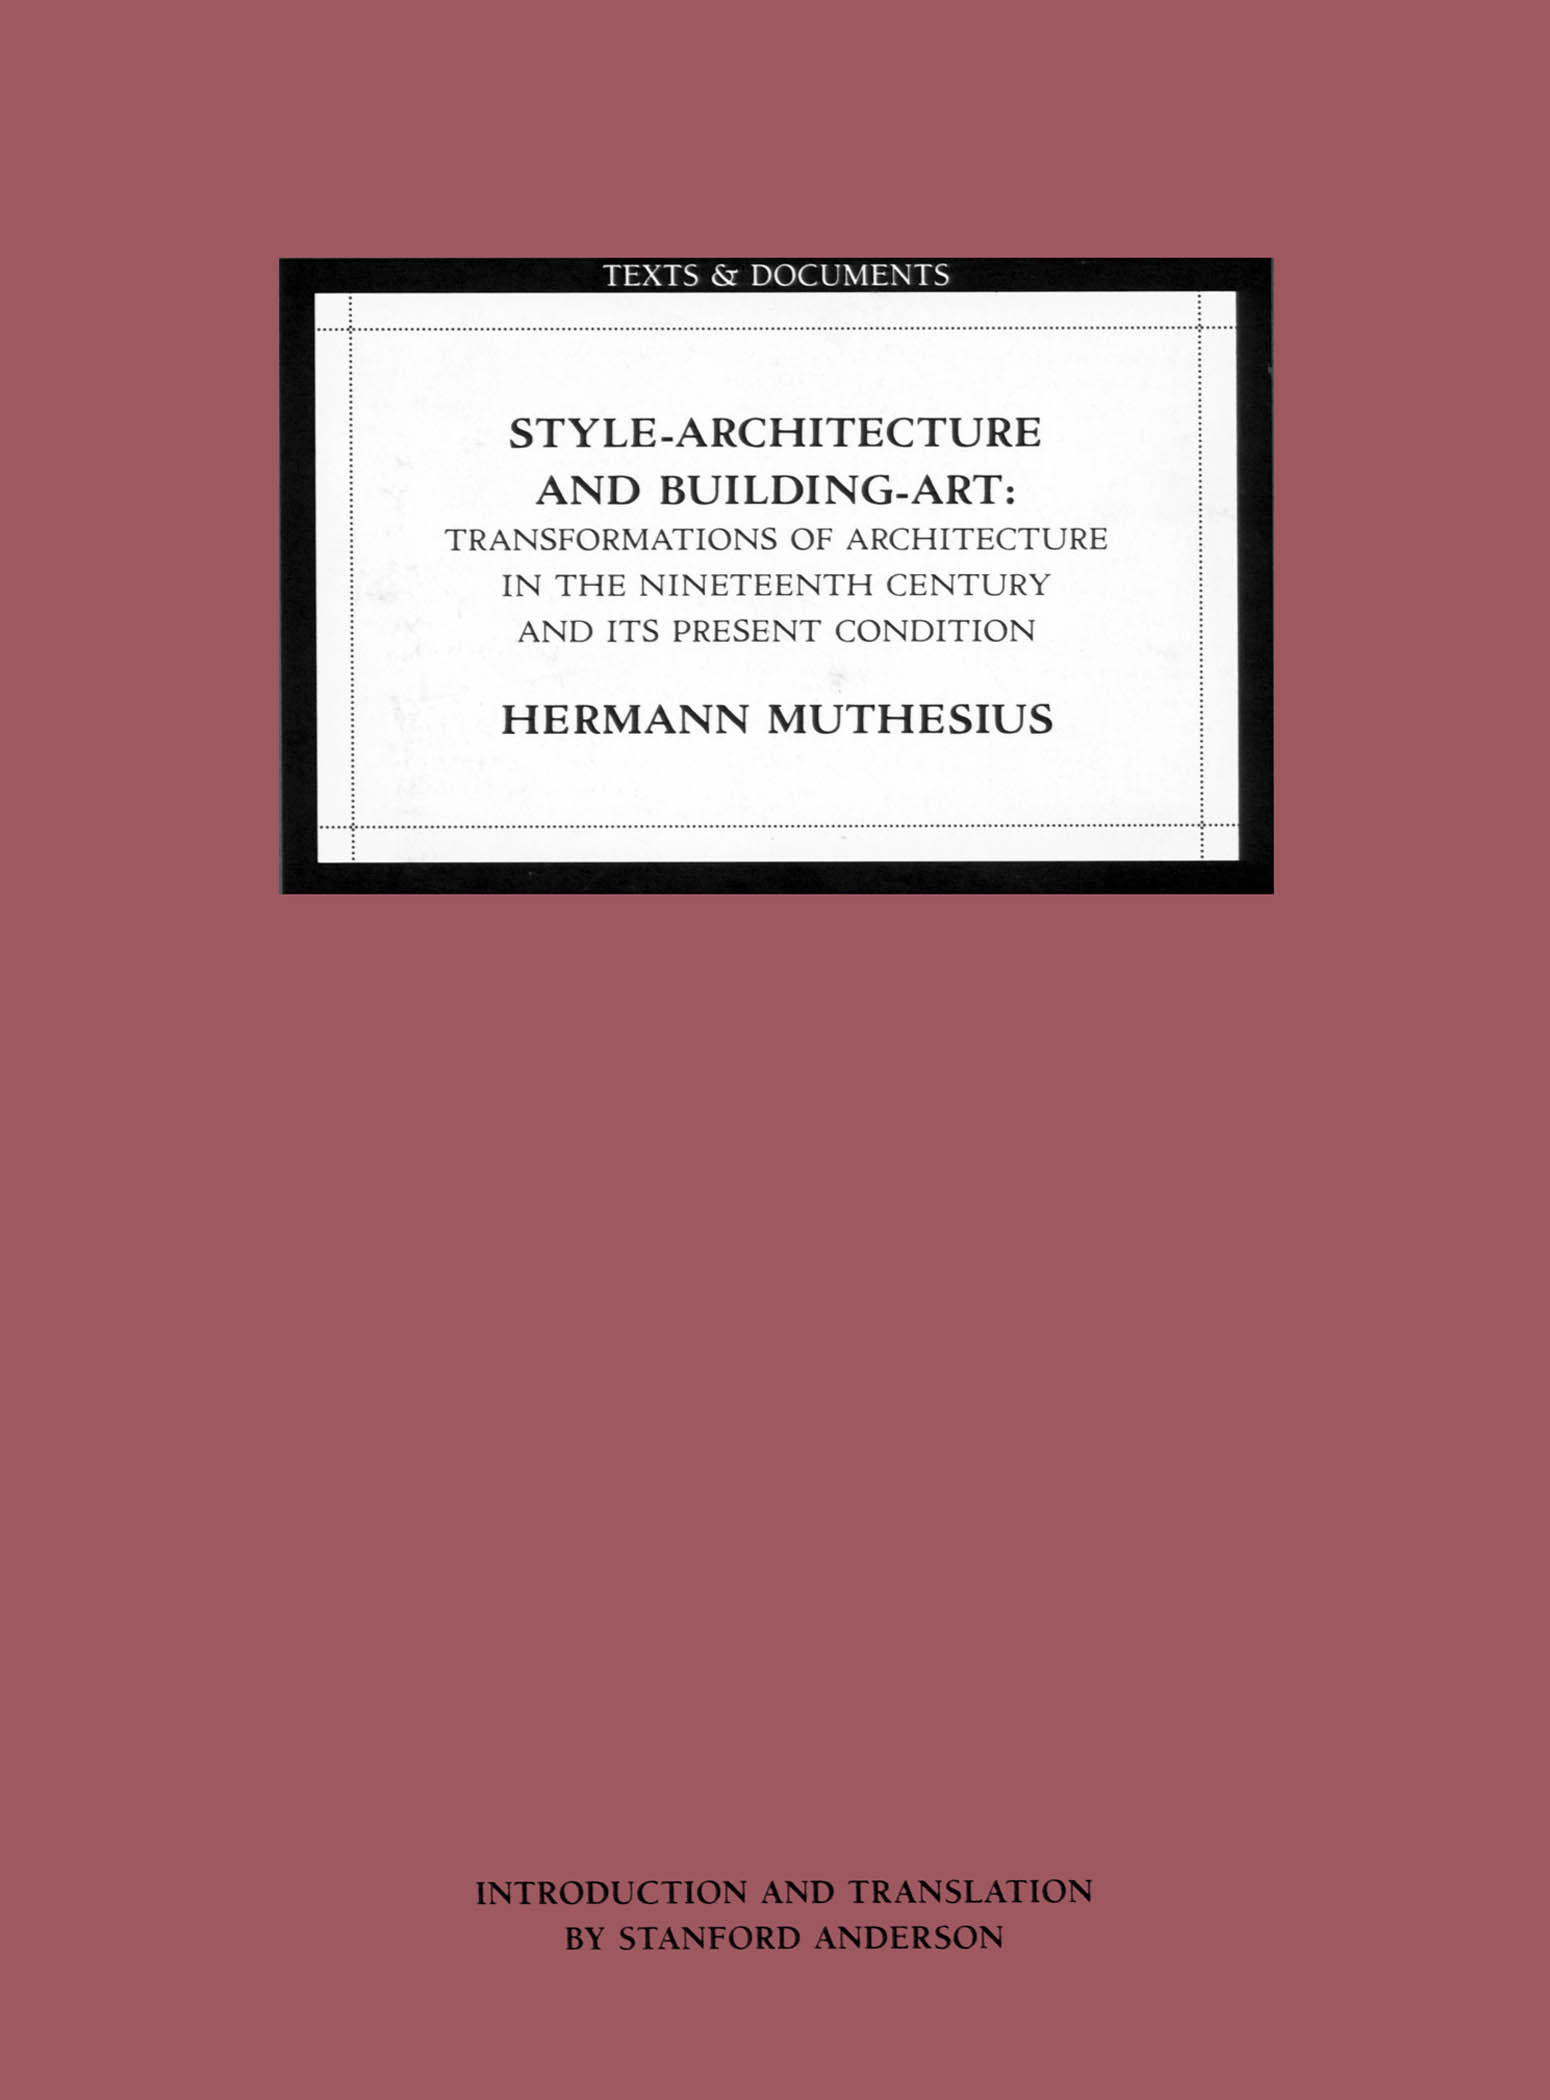 Style-Architecture and Building-Art: Transformations of Architecture in the Nineteenth Century and Its Present Condition  Hermann Muthesius  Introduction and translation by Stanford Anderson  1994